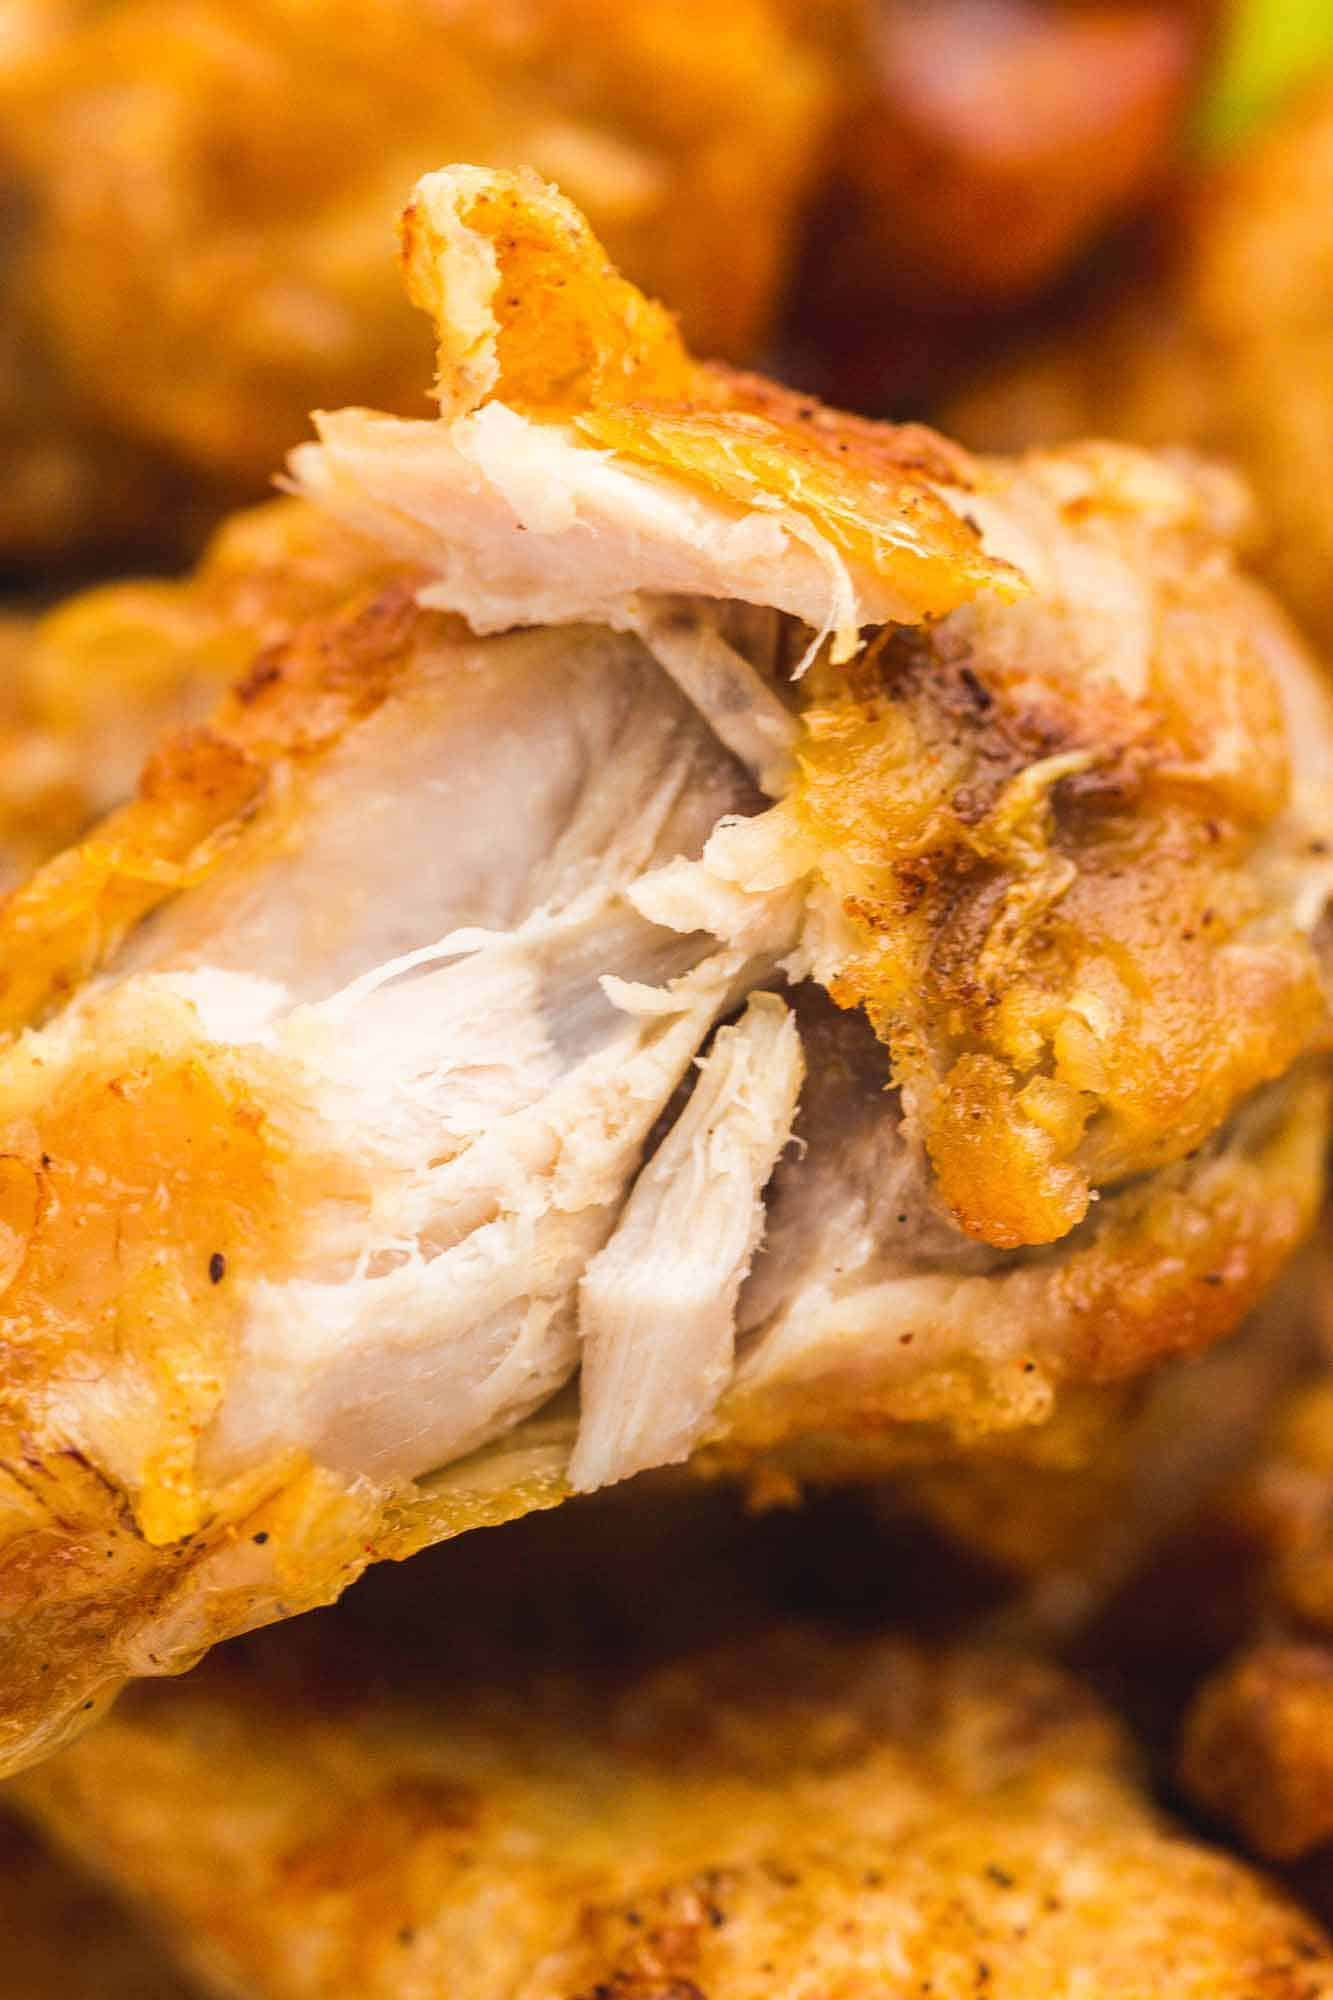 Close up of a chicken wing meat